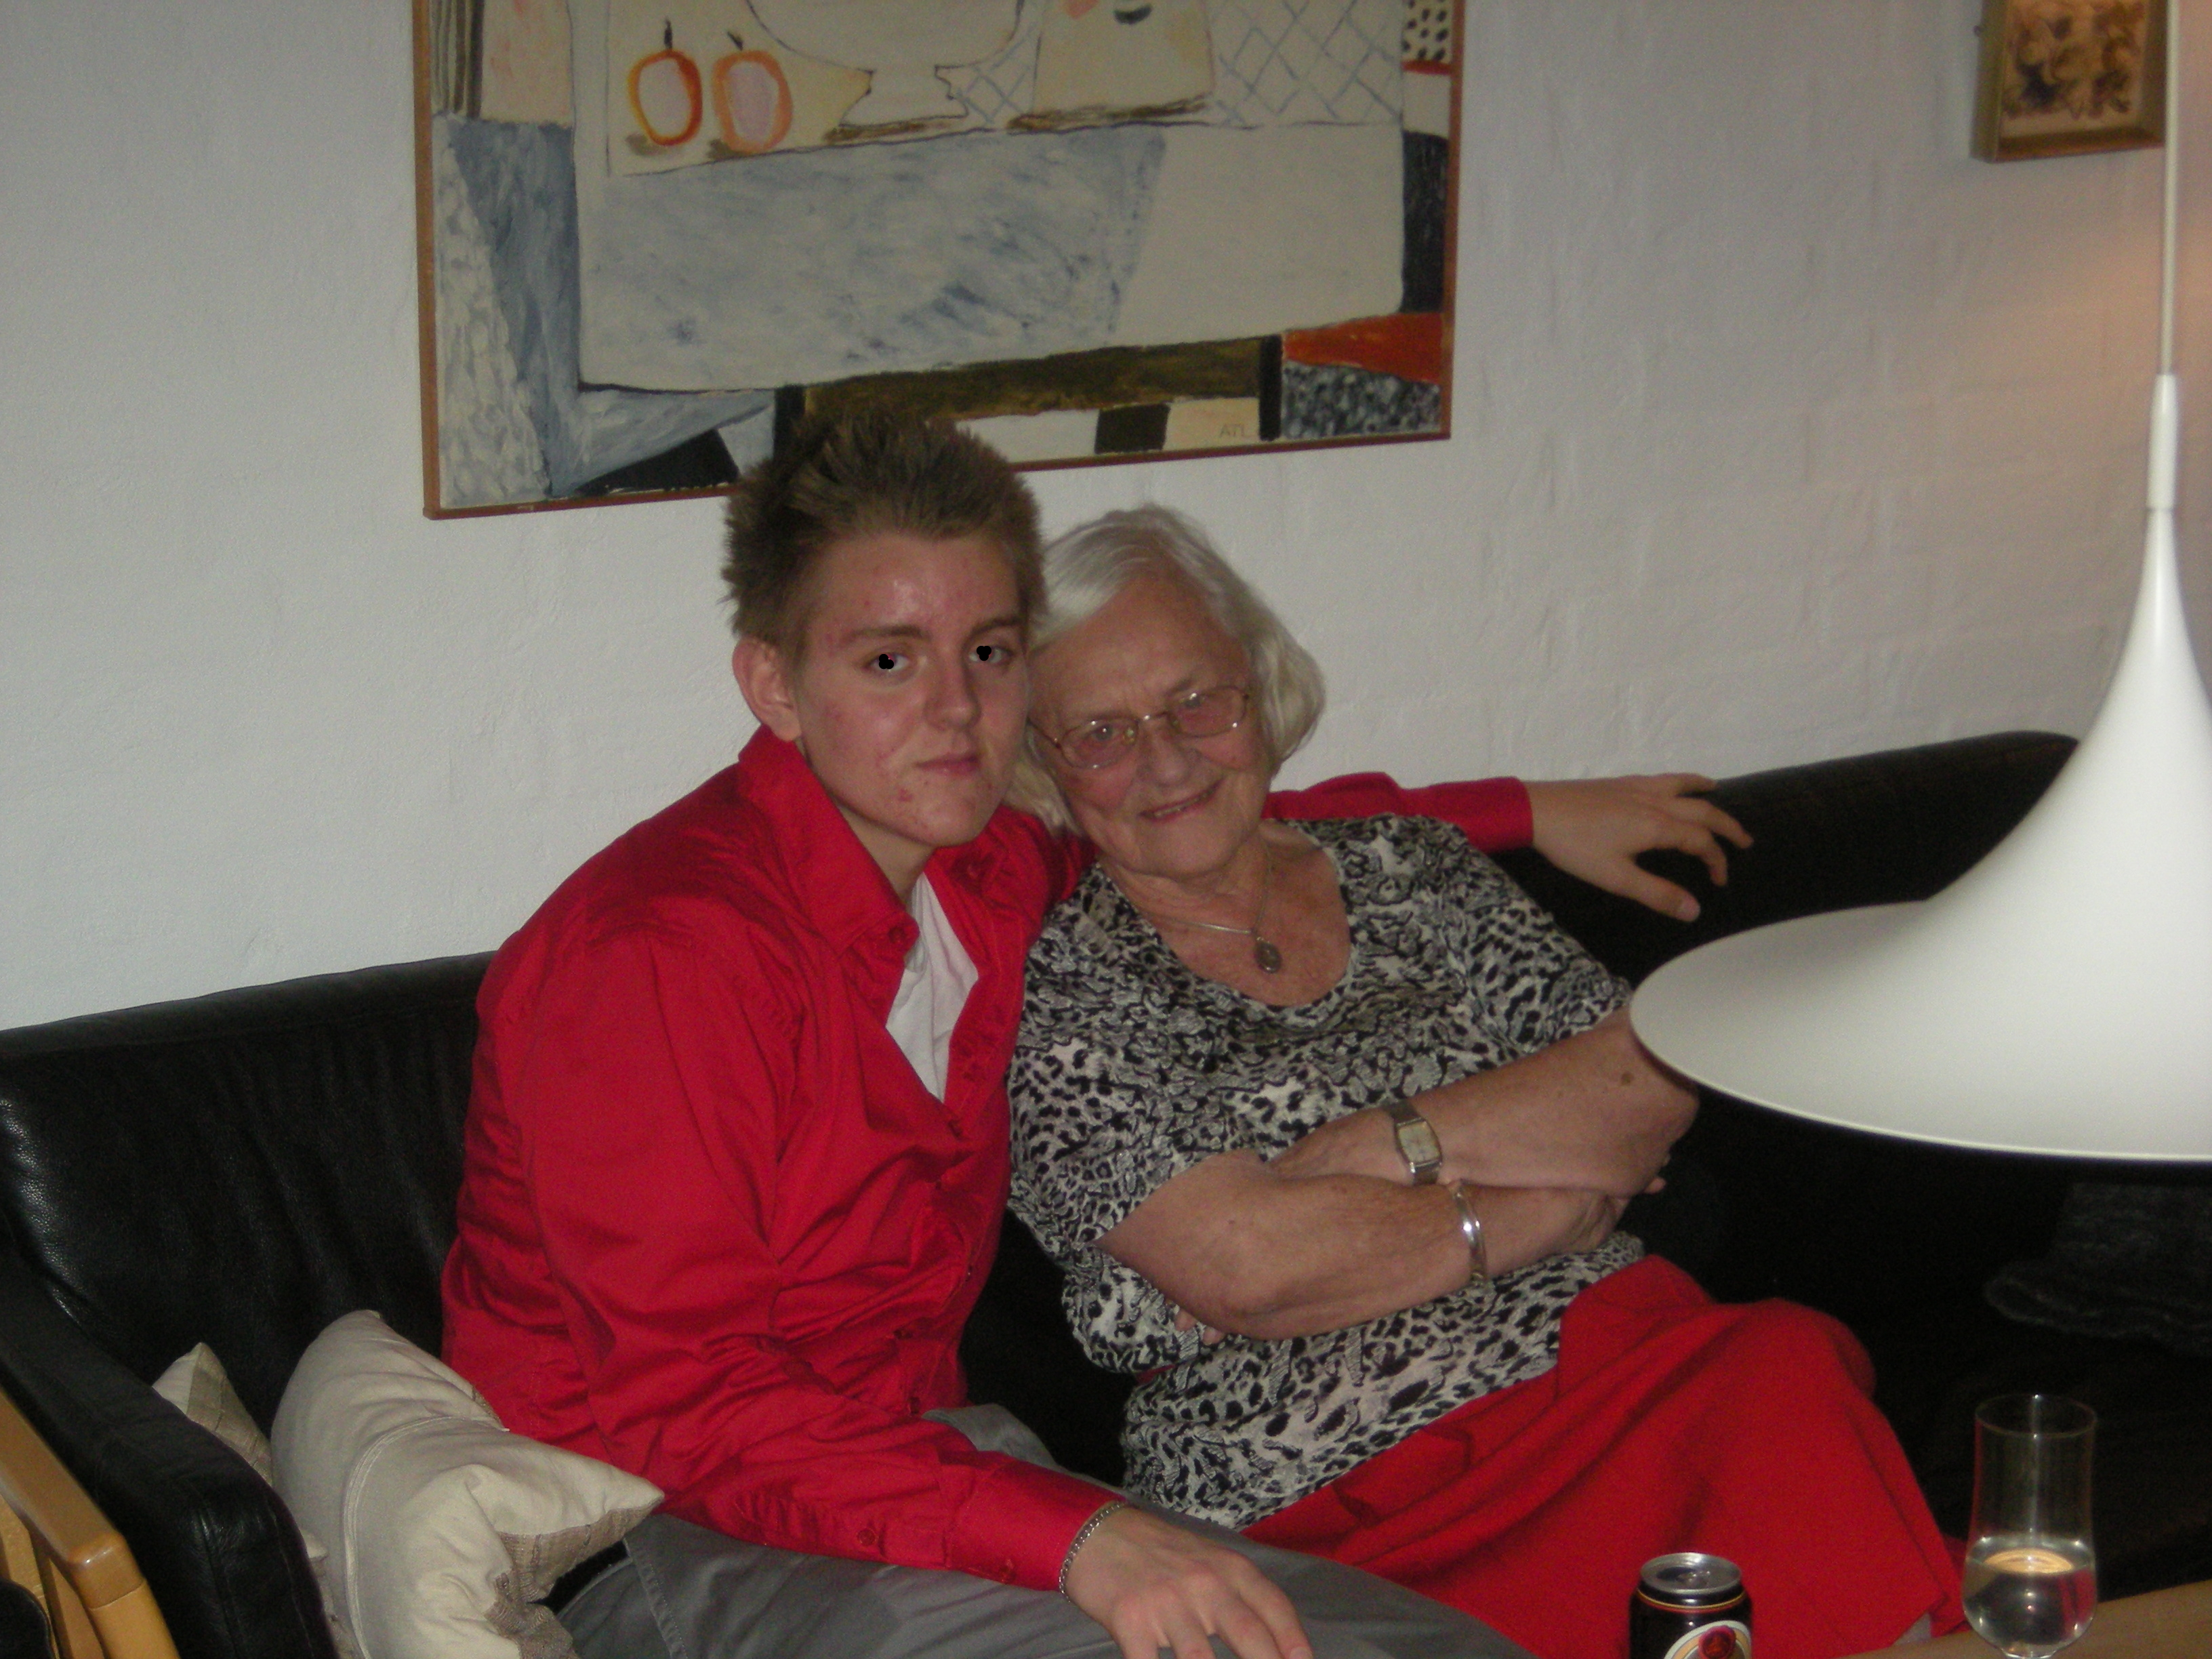 Mum and Henriki